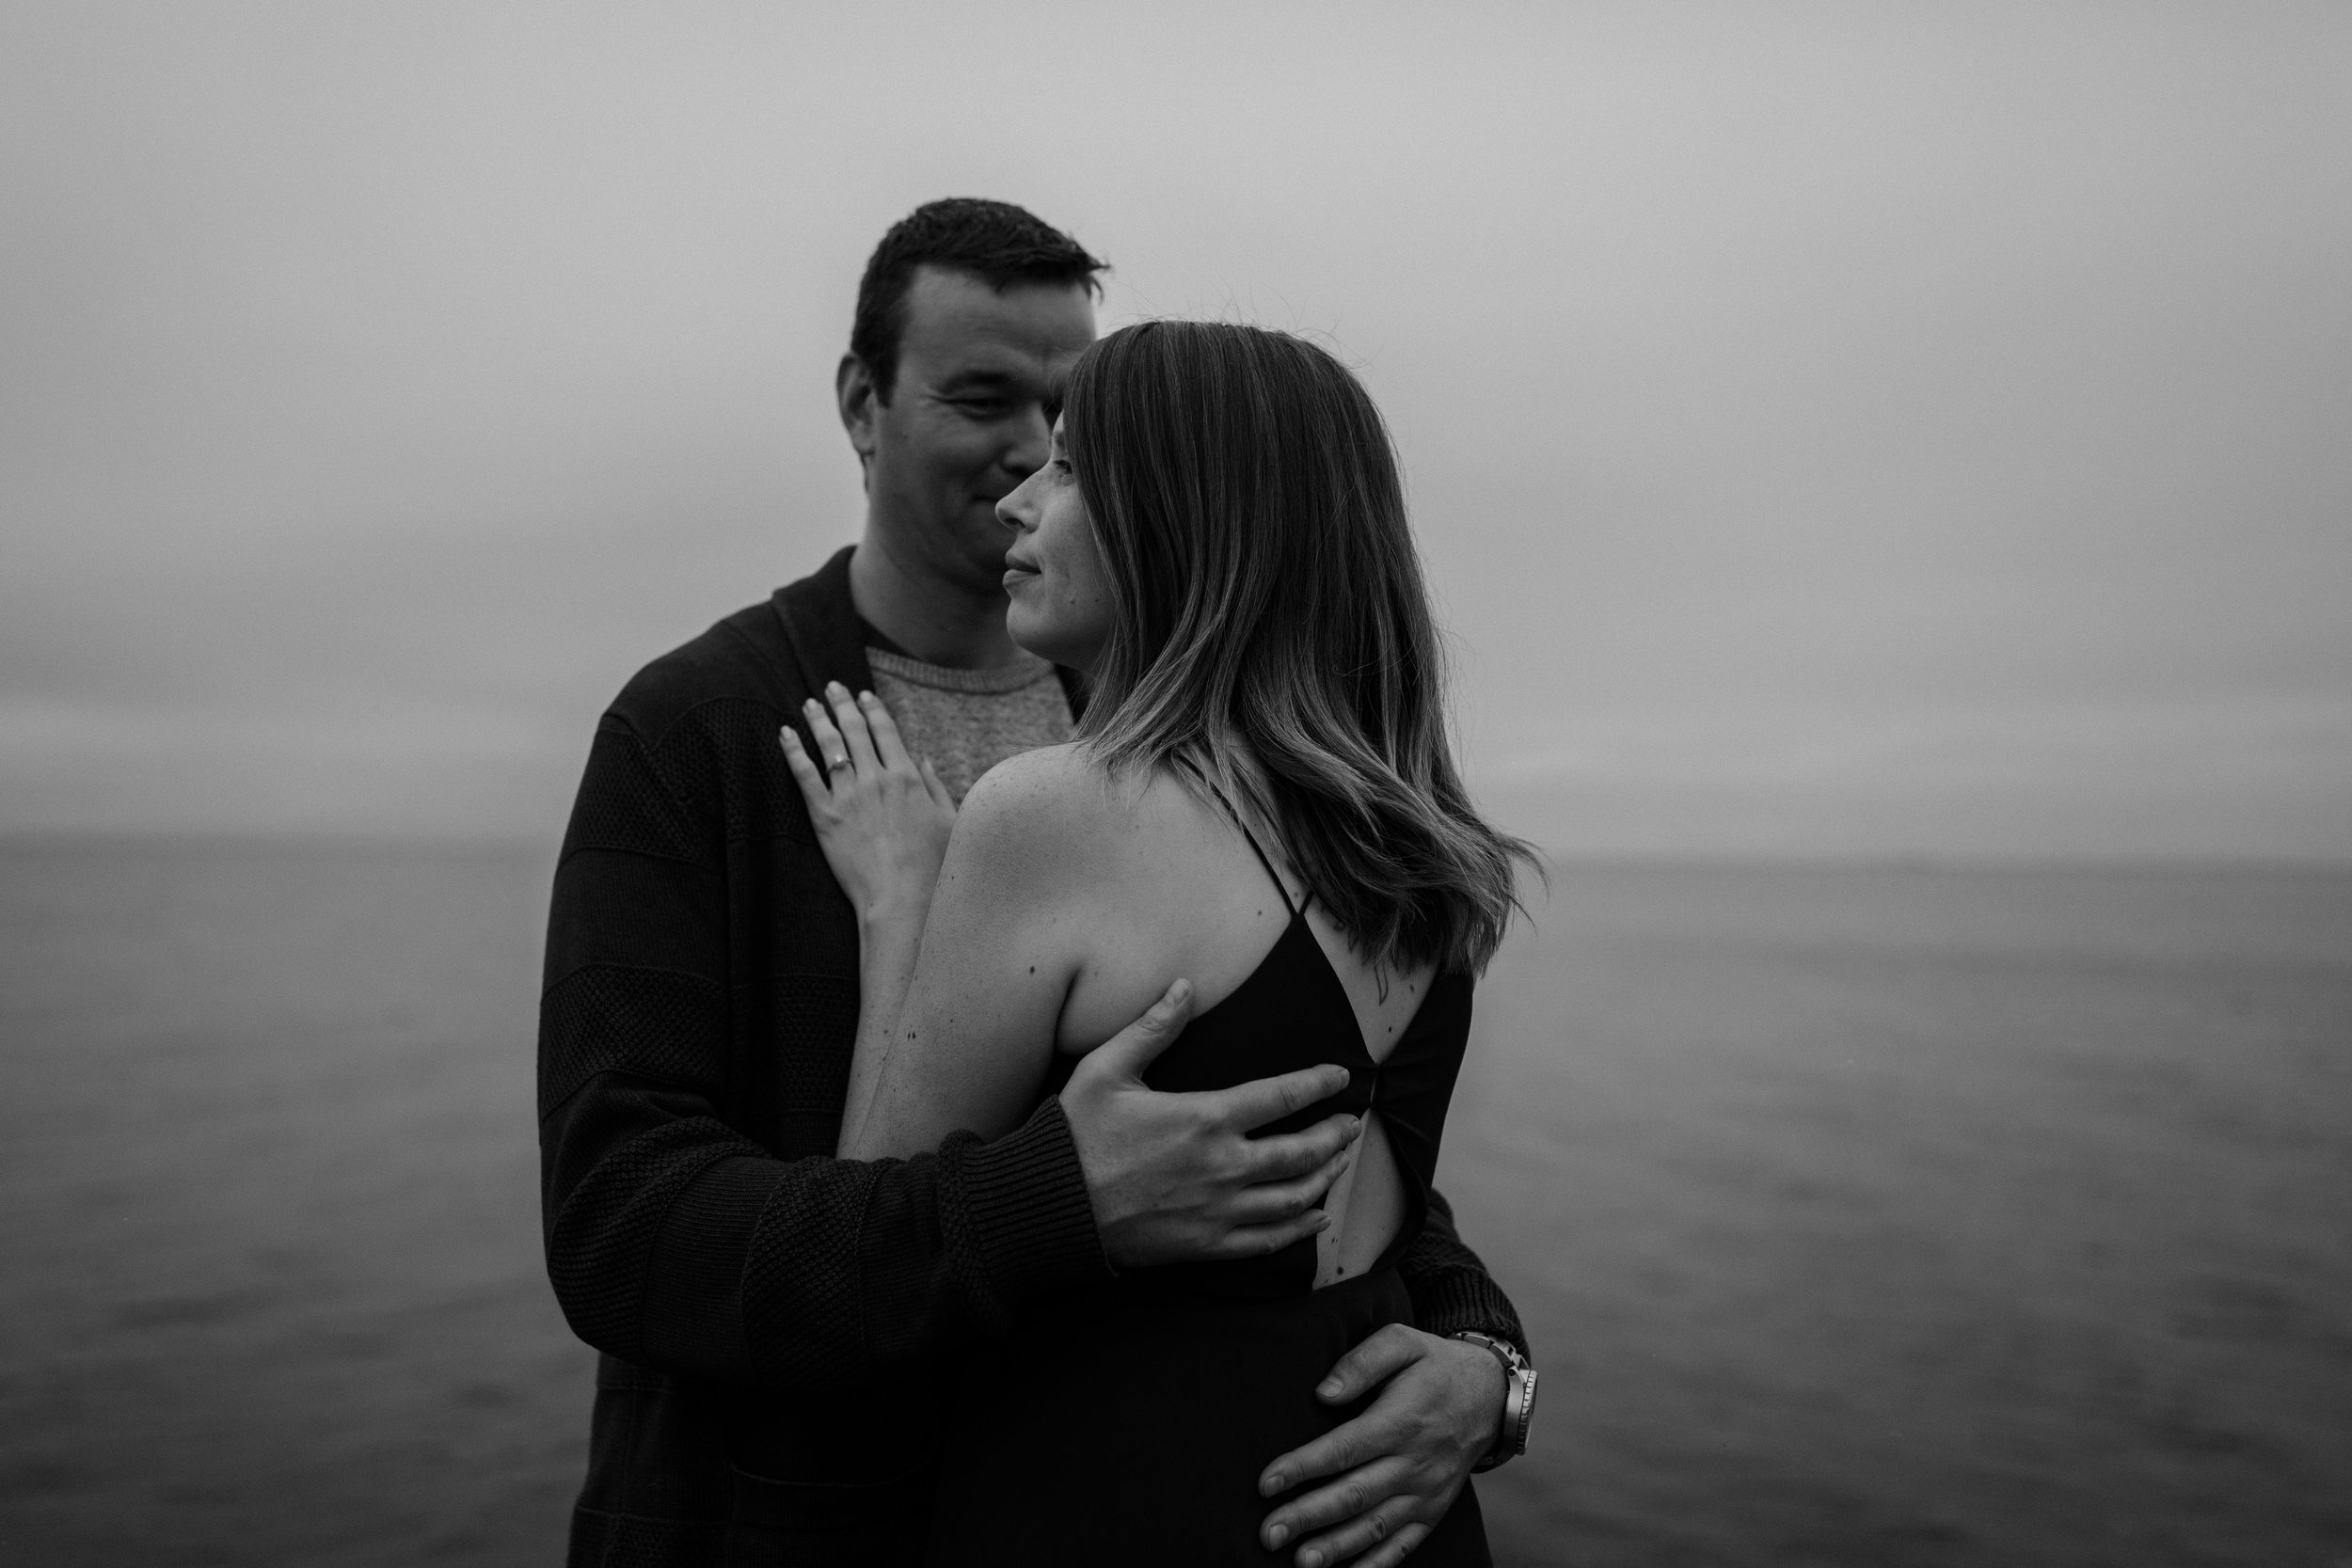 SUNSHINE COAST FOREST & BEACH ENGAGEMENT PHOTOS — Ashley & Antoine — JENNIFER PICARD PHOTOGRAPHY257.JPG